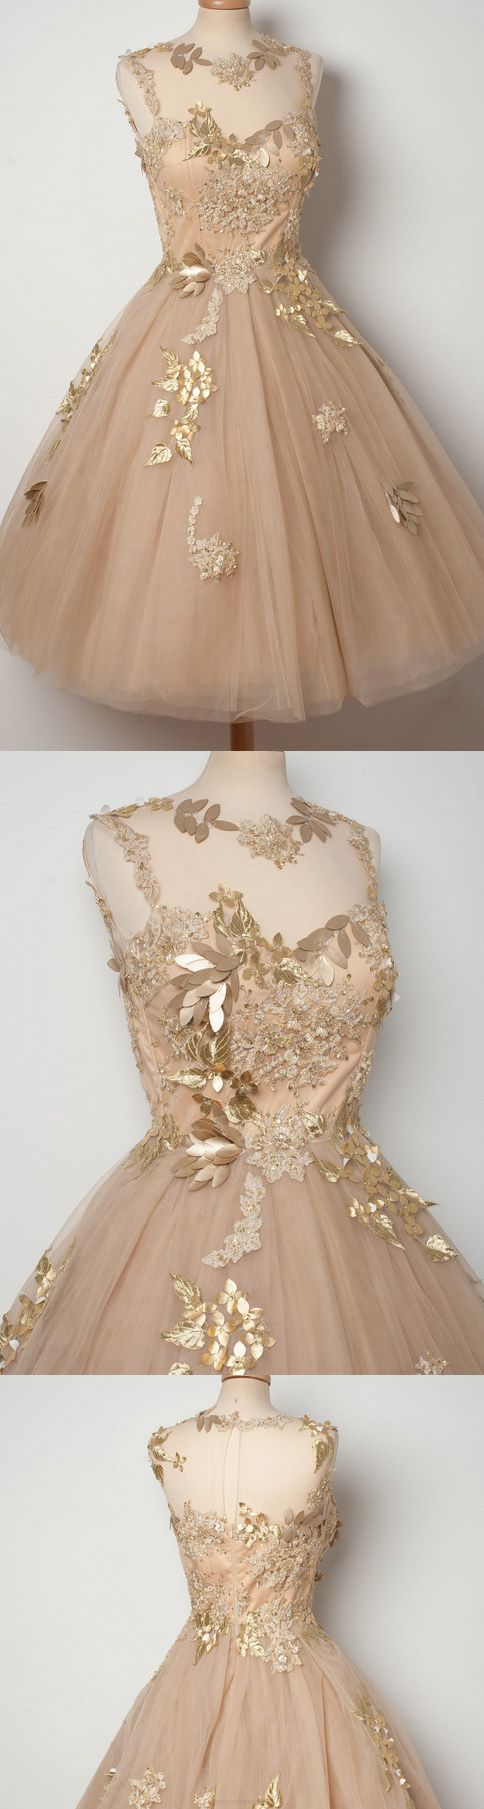 Applique homecoming dresses champagne alineprincess homecoming